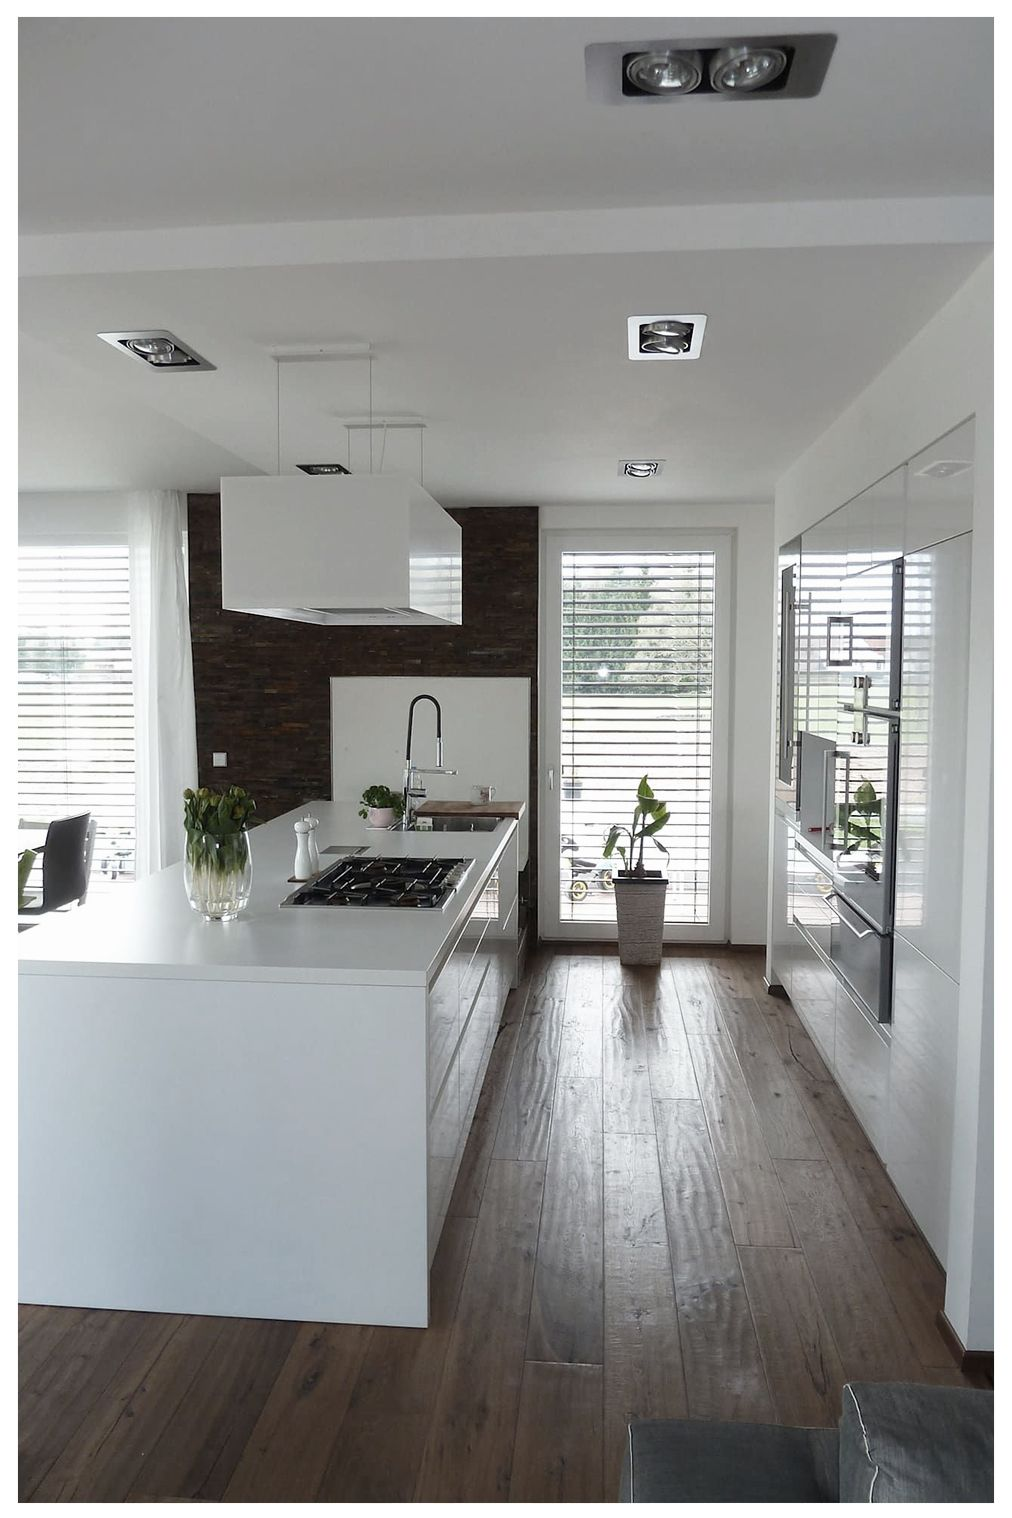 20 Timeless Kitchen Remodel Ideas Before And After For 2020 Remodel Tips Tool In 2020 Best Kitchen Designs Modern Kitchen Design Modern Kitchen